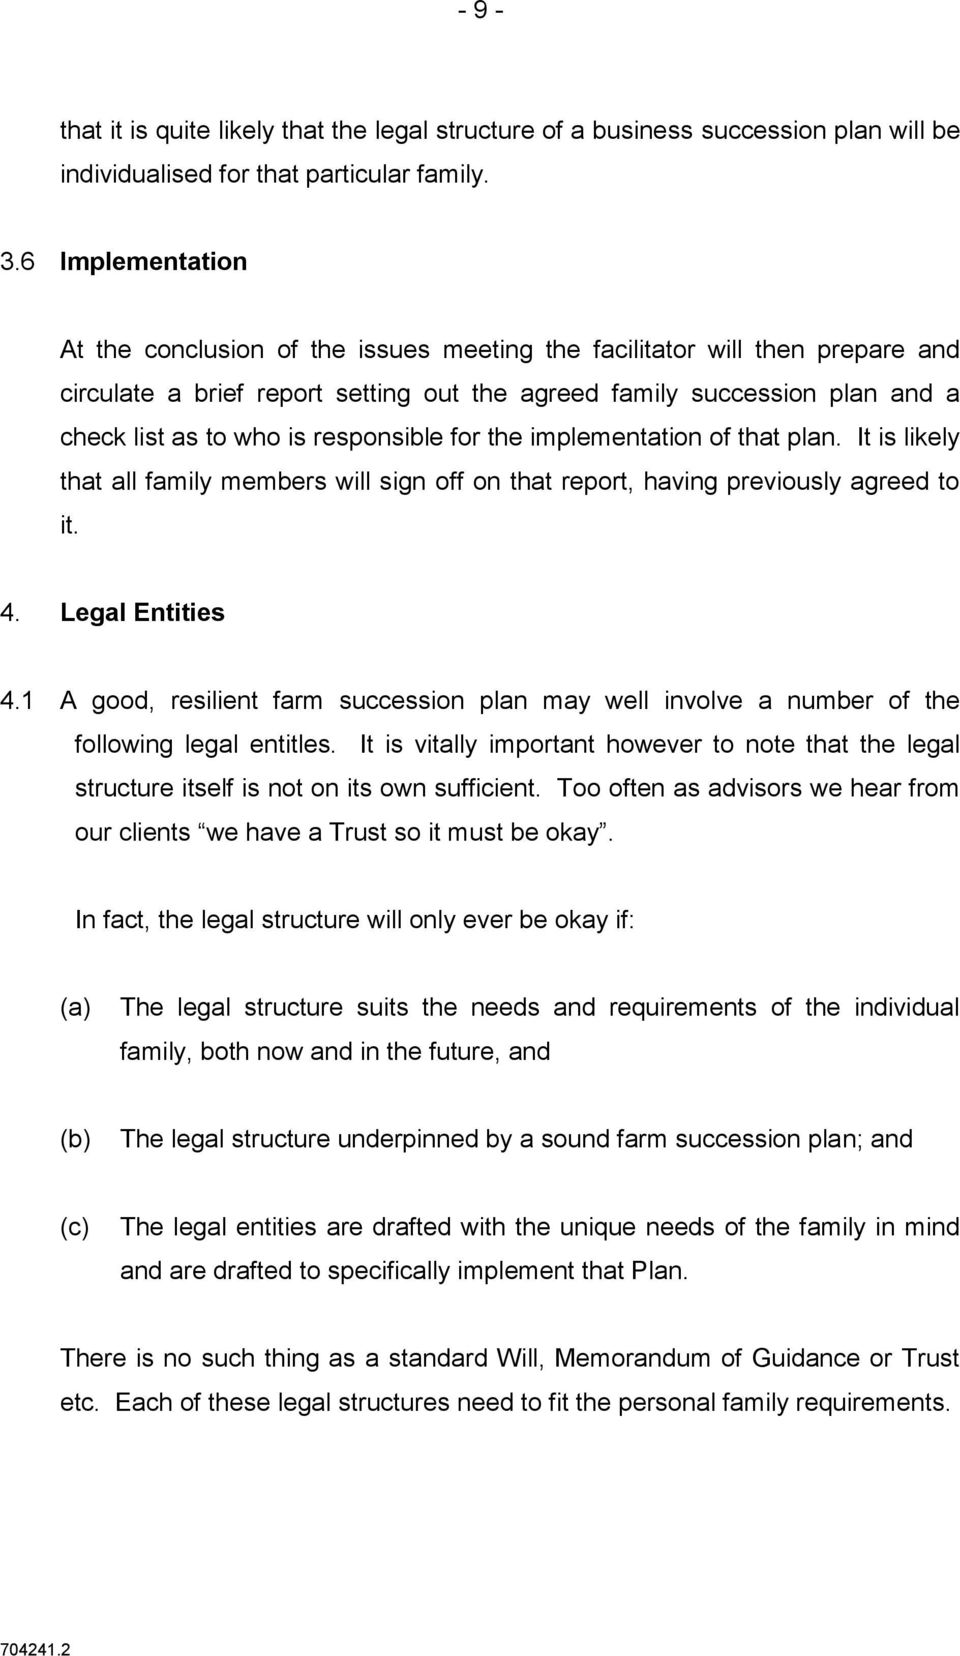 responsible for the implementation of that plan. It is likely that all family members will sign off on that report, having previously agreed to it. 4. Legal Entities 4.